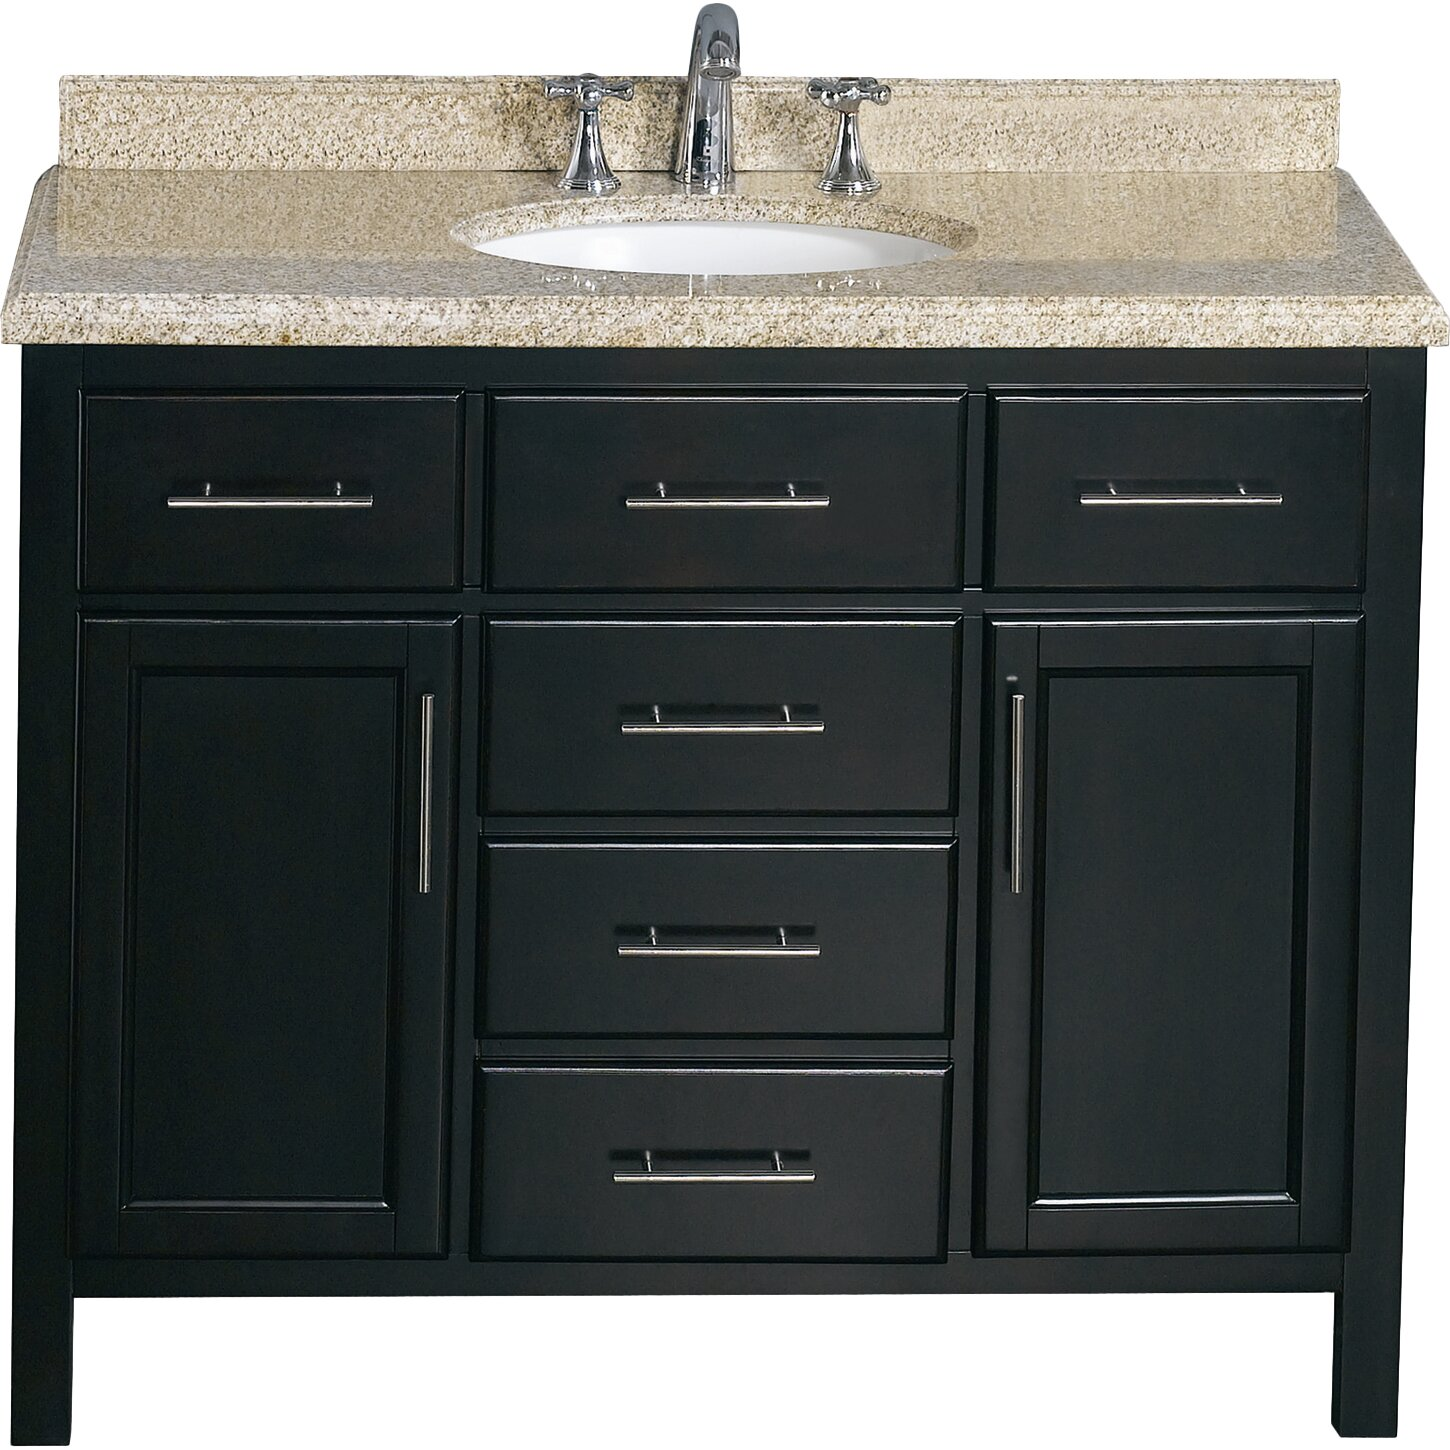 42 Bathroom Vanity Ove Decors Milan 42 Single Bathroom Vanity Set Reviews Wayfair